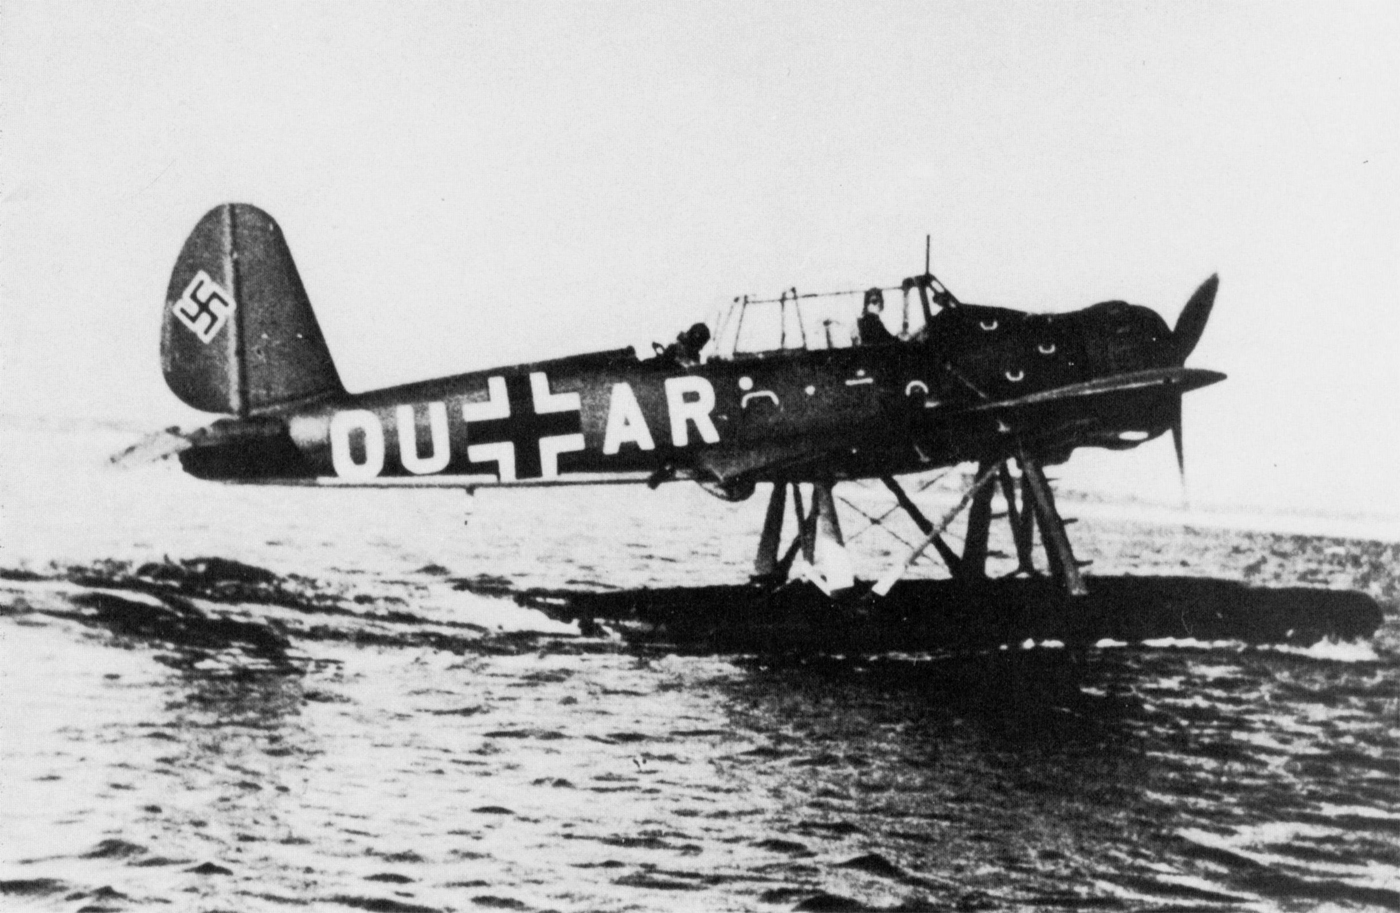 During the Battle of Britain, a lone German Arado Ar 196 reconnaissance seaplane fought against six RAF Spitfires. And shot one down.